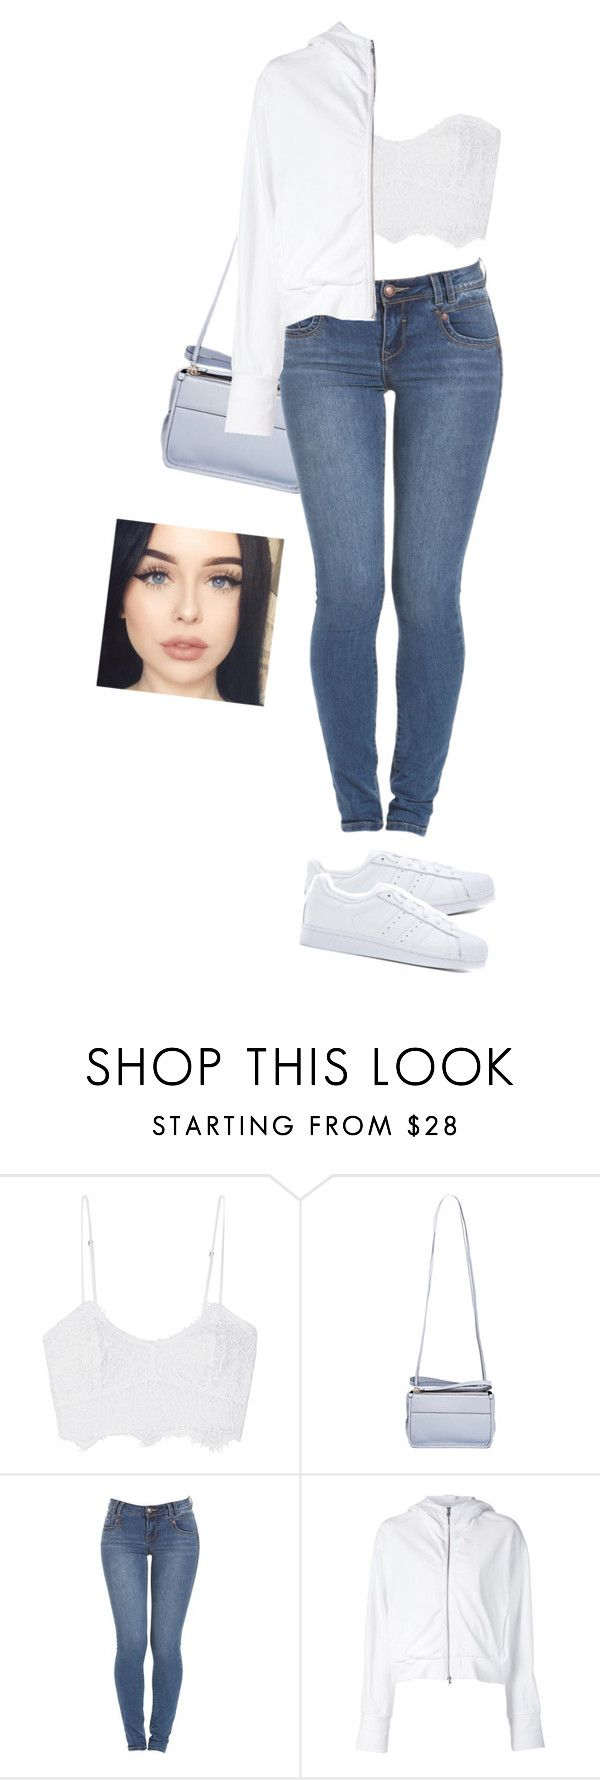 """""""simple // 34.0"""" by akiraokay ❤ liked on Polyvore featuring Miguelina, Proenza Schouler, Lareida, adidas Originals, Brinley Co and white"""